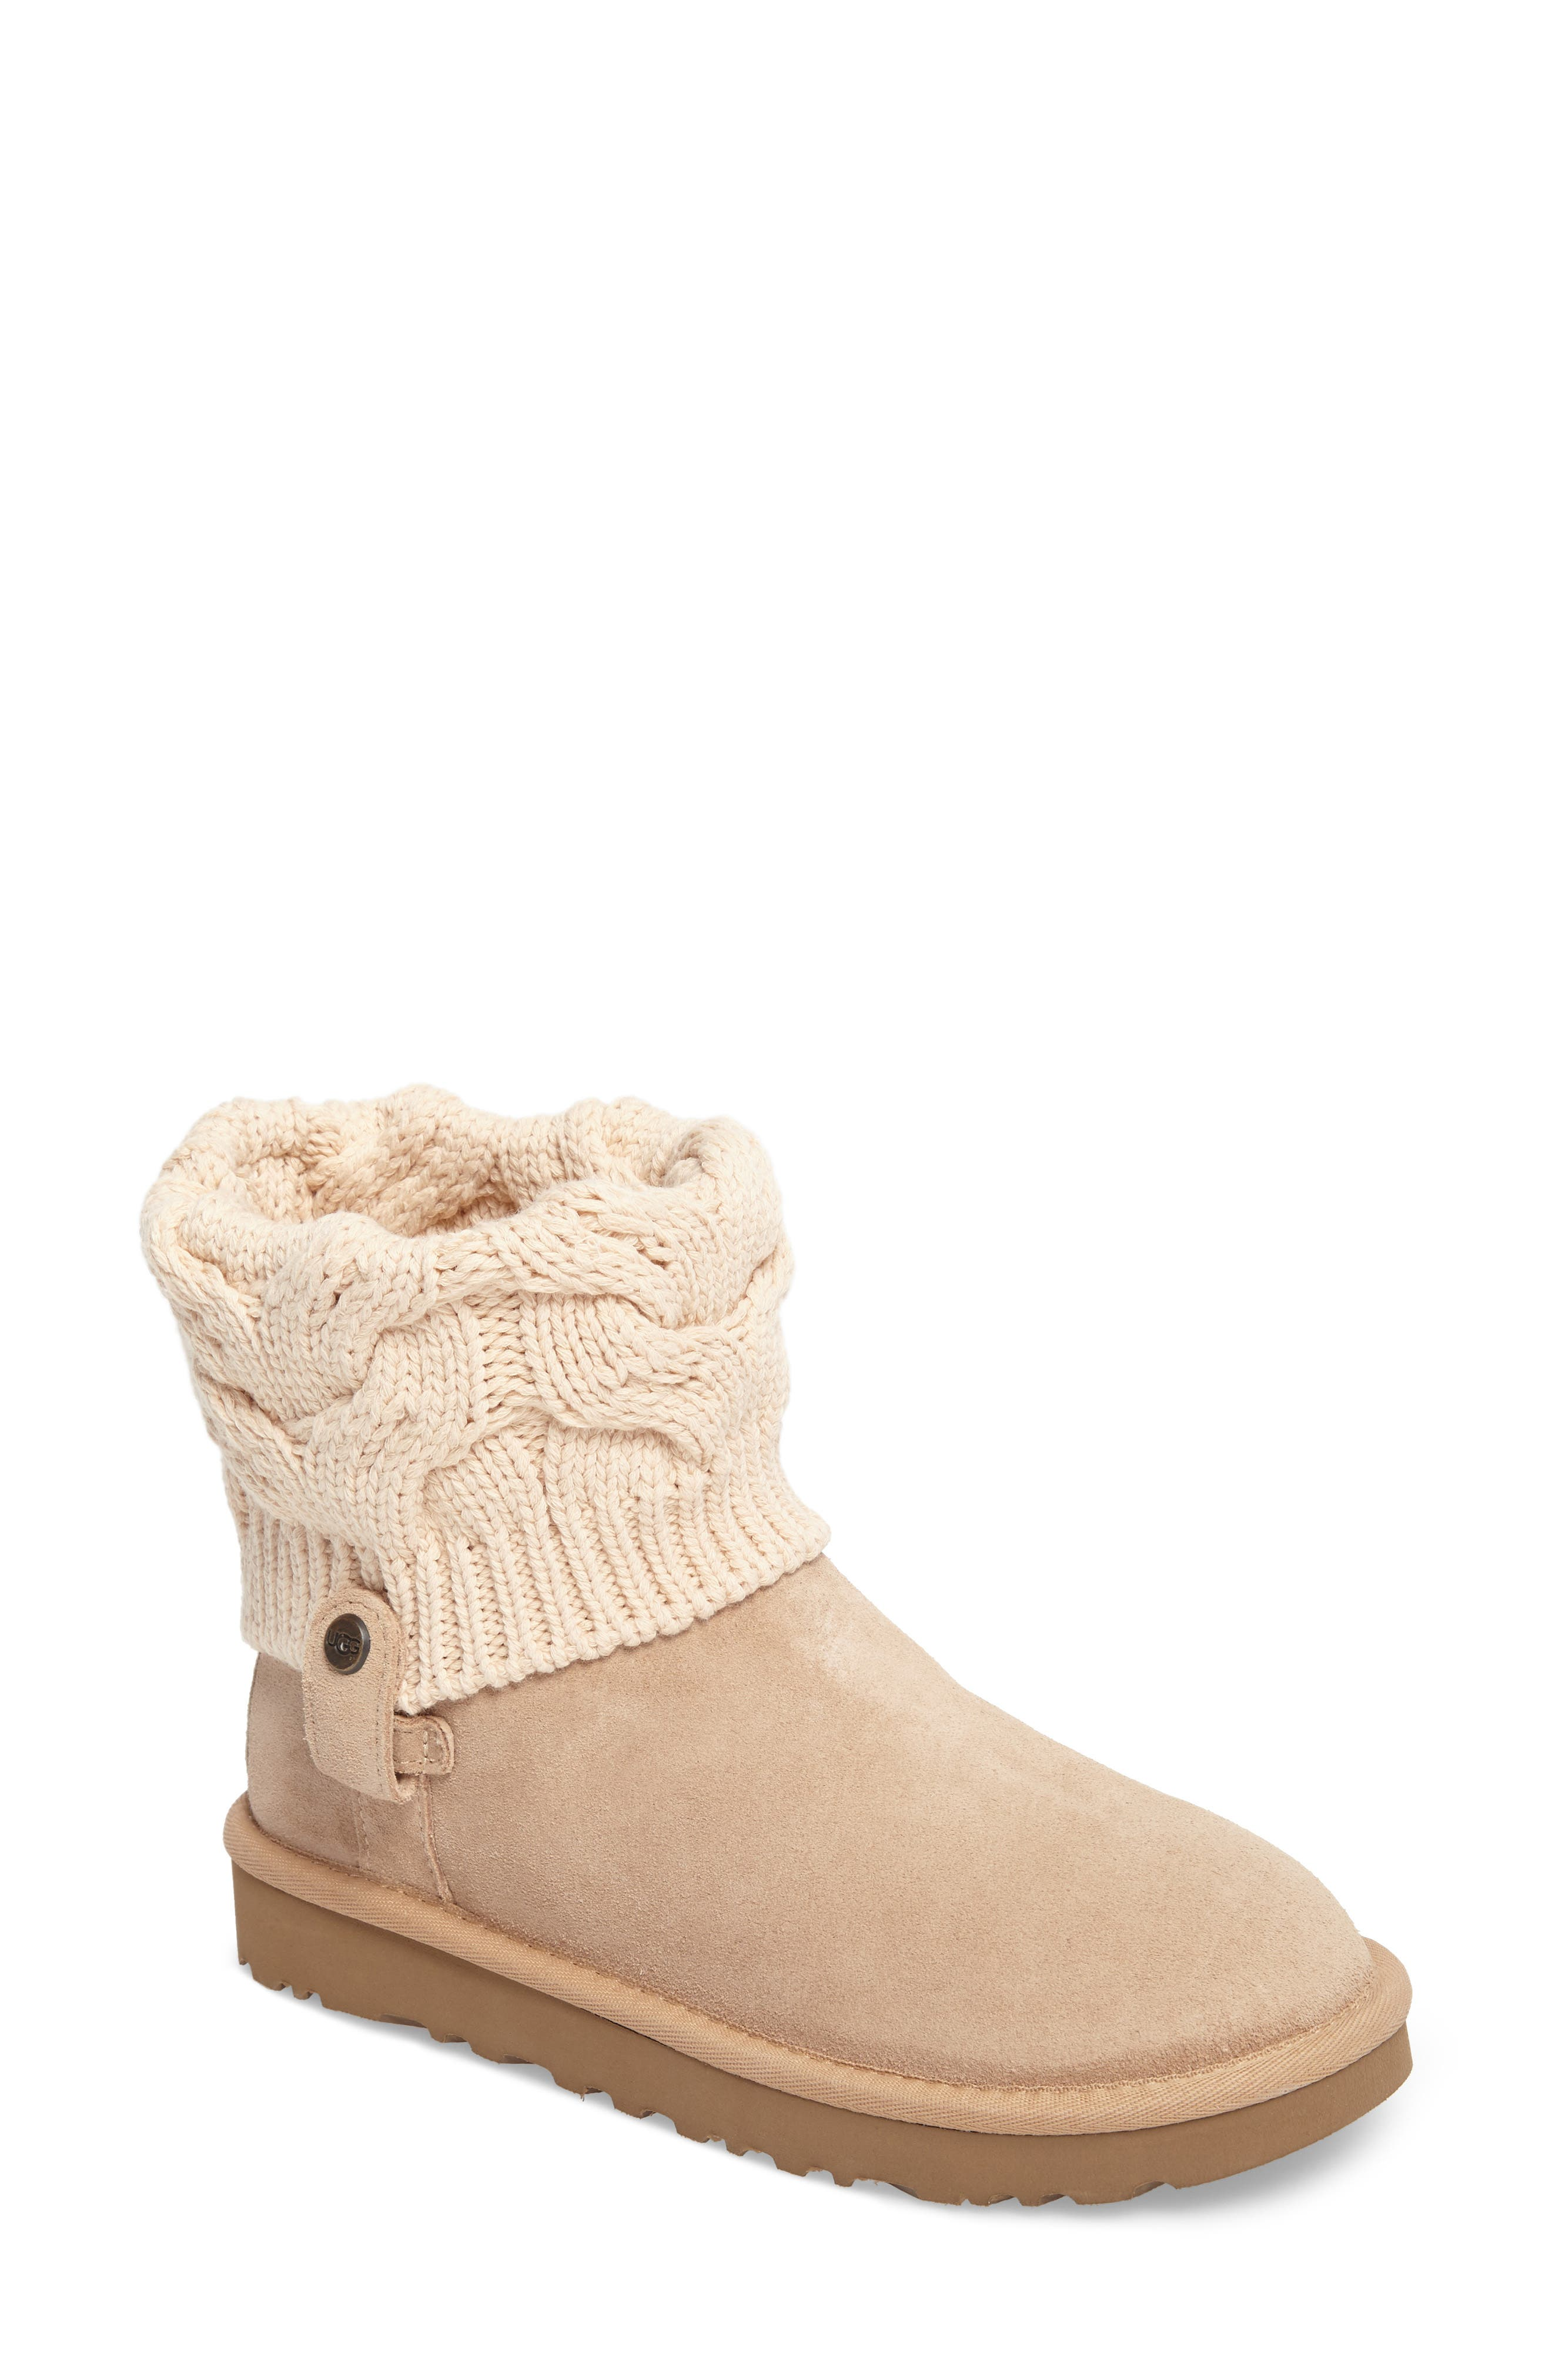 Main Image - UGG® Saela Knit Cuff Boot (Women)